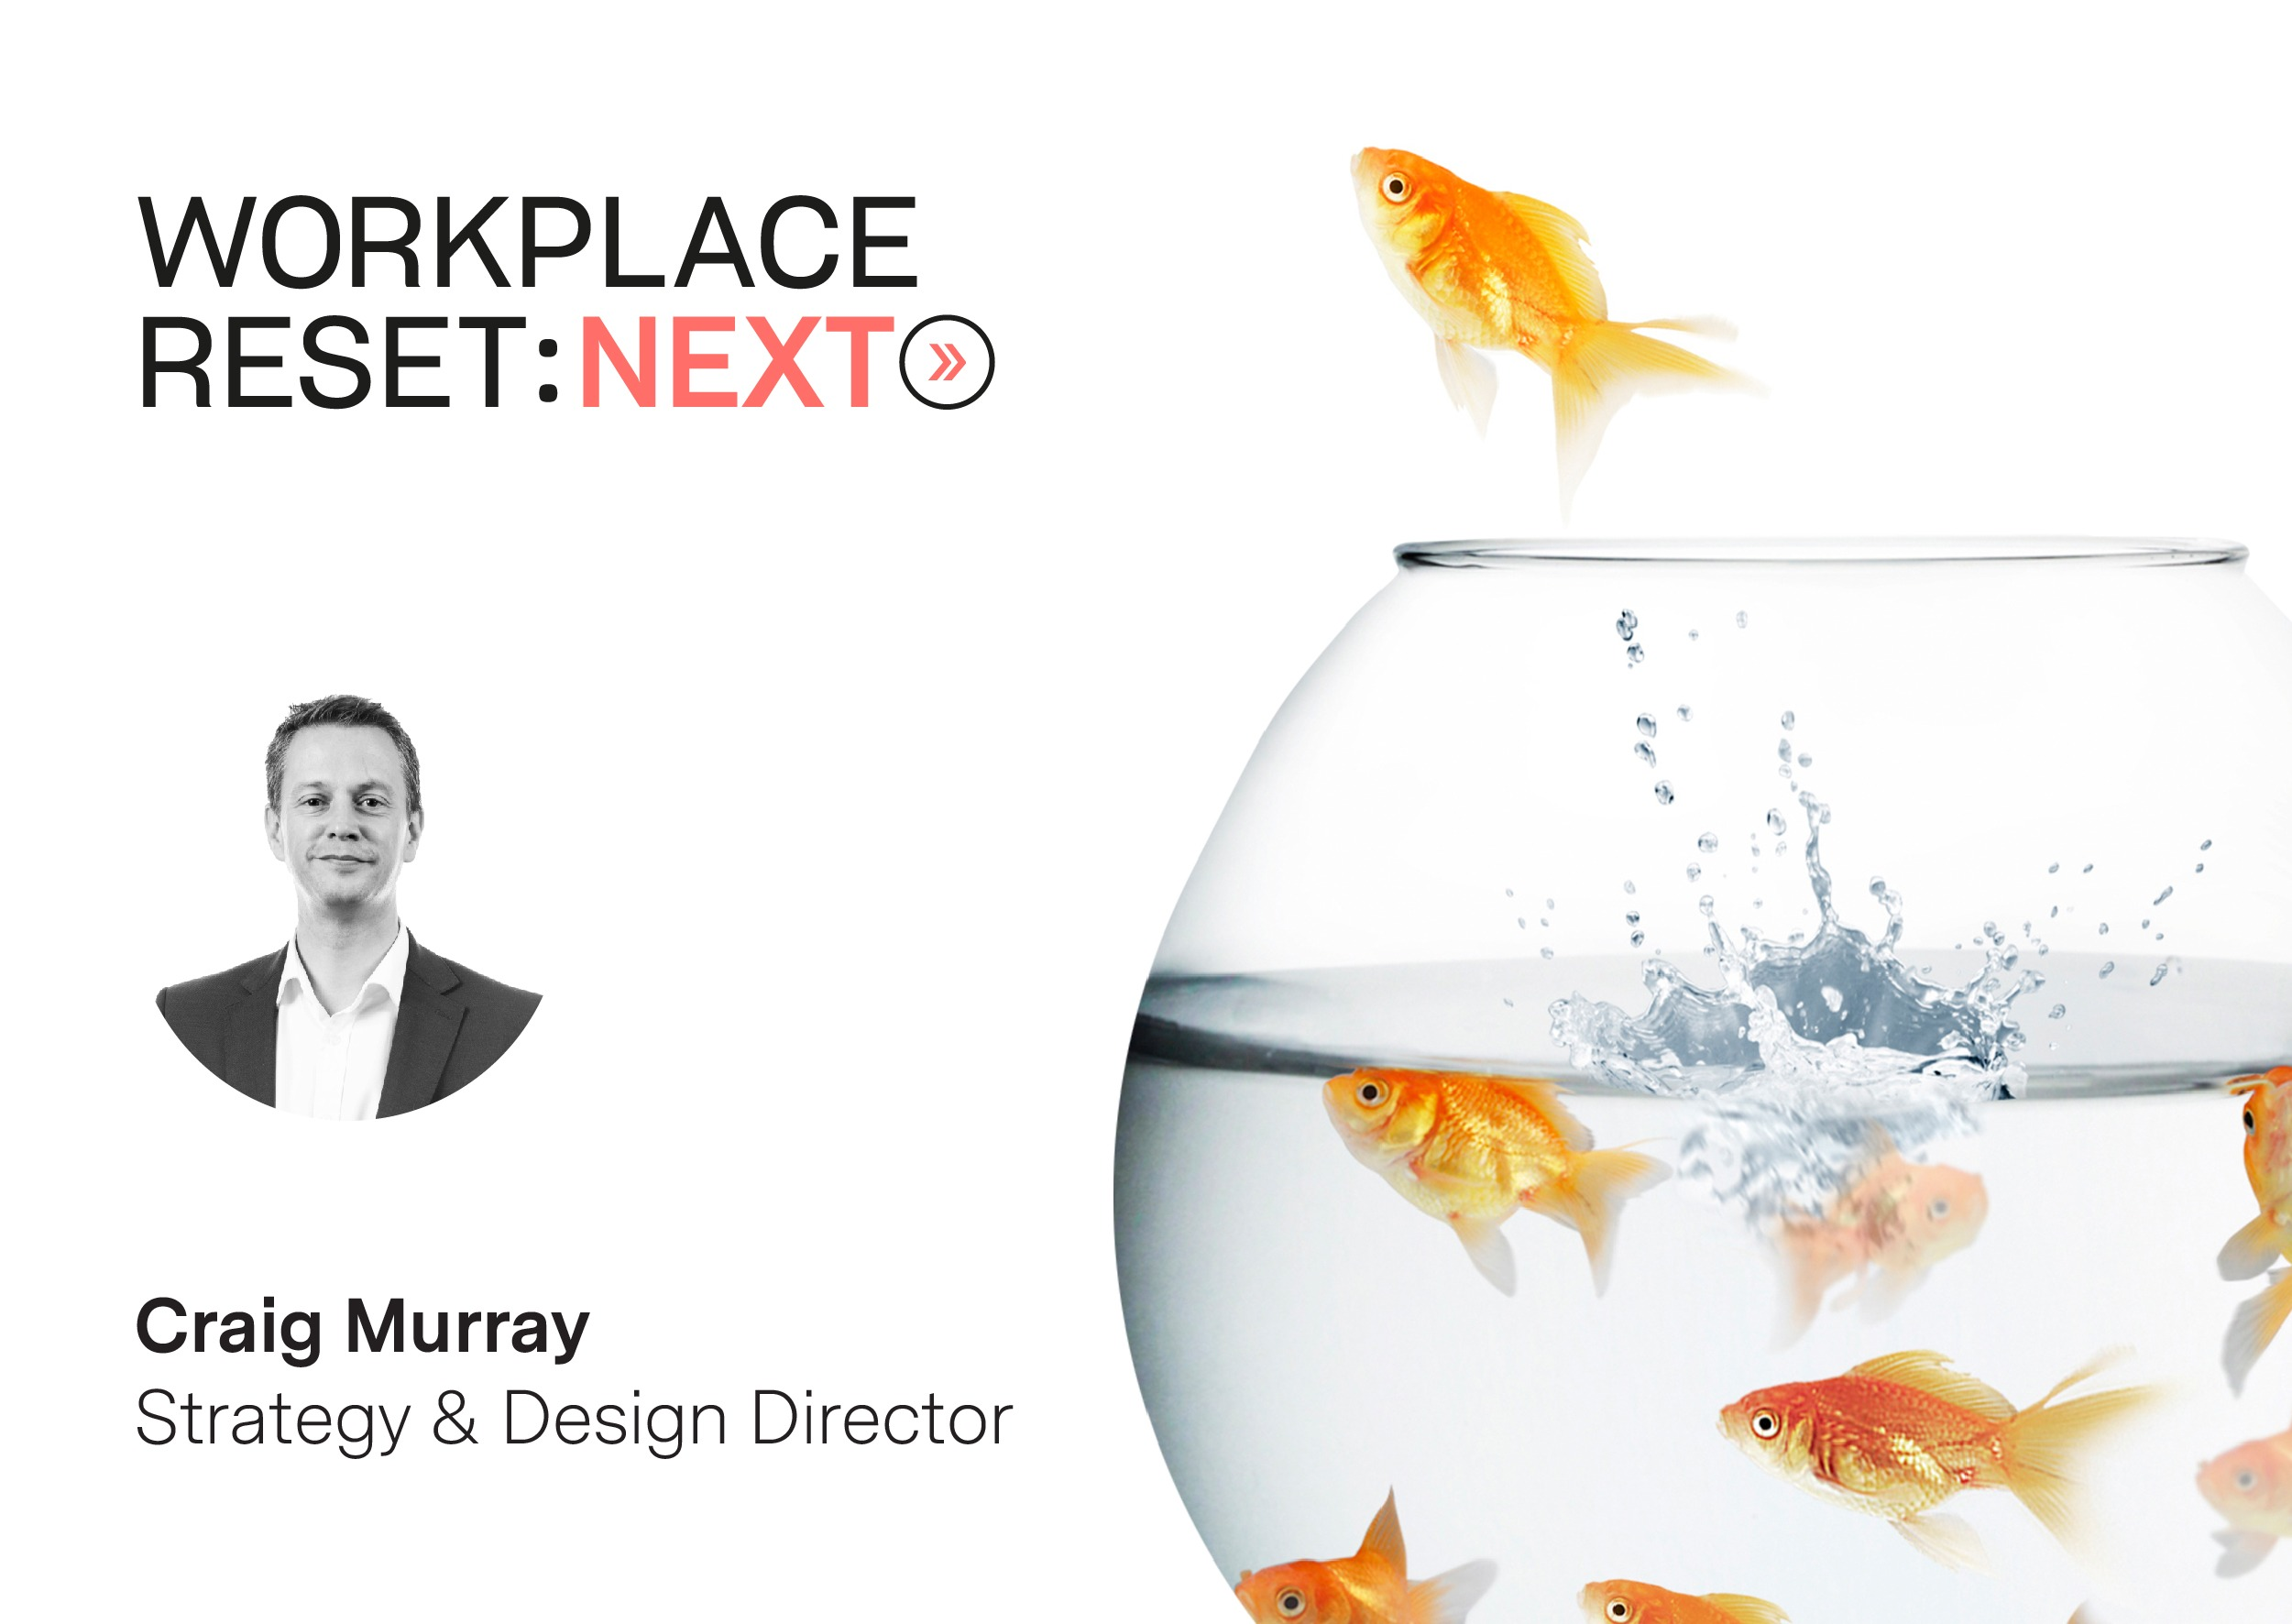 The unbound workplace - don't forget the water!